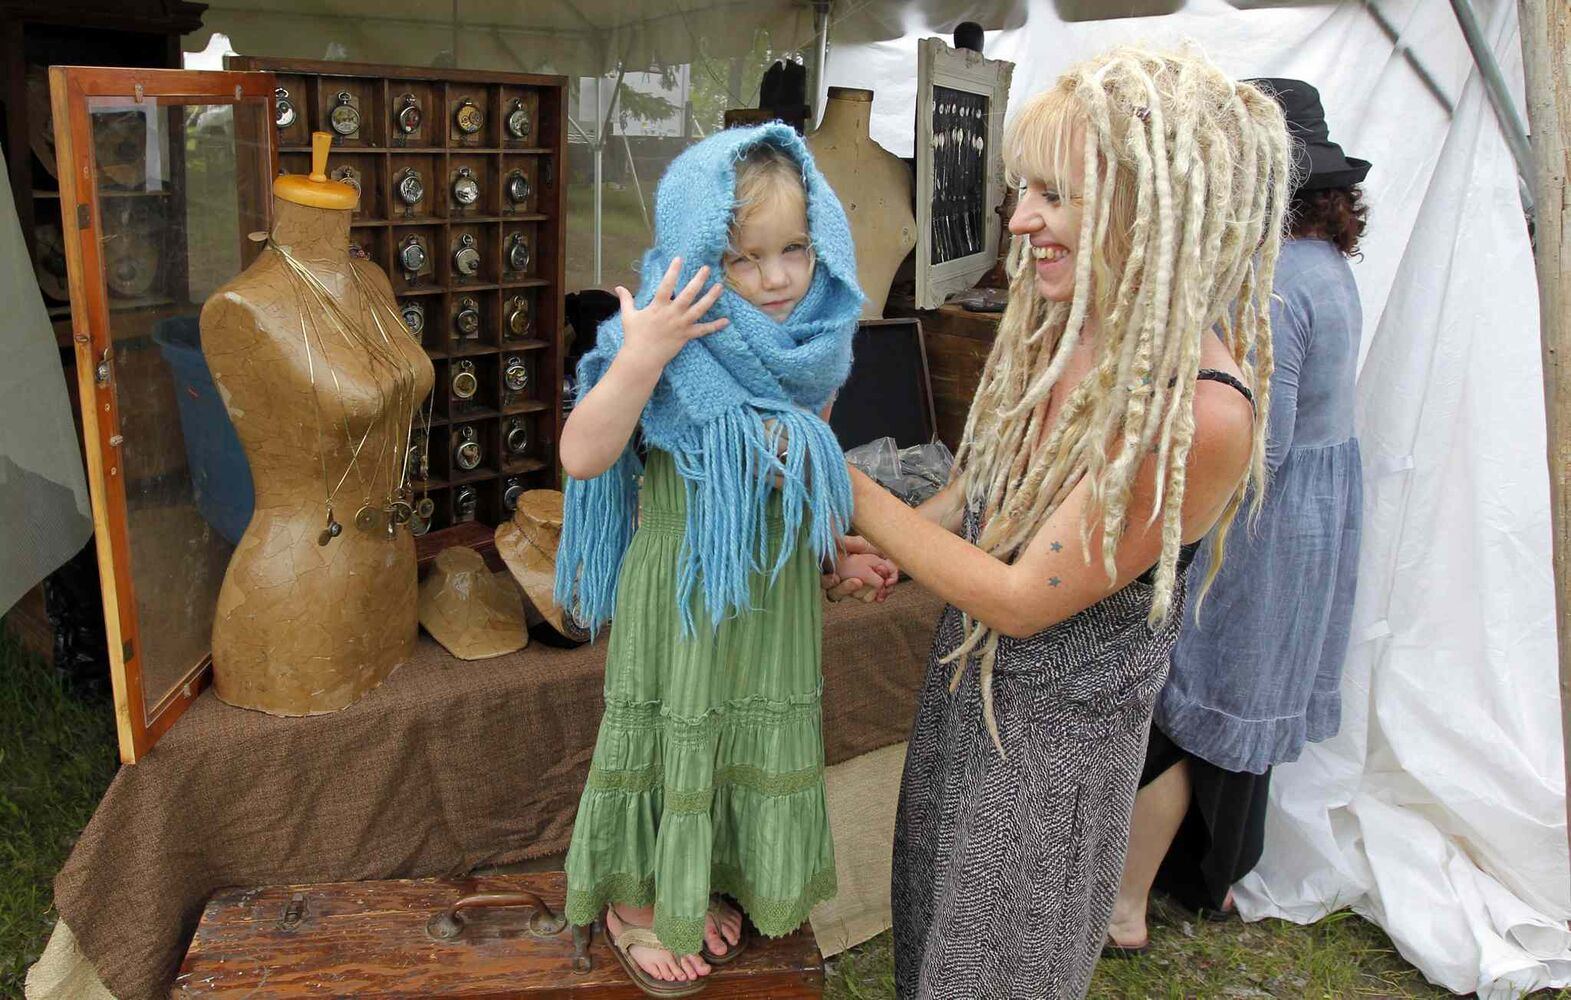 Briar MacDonald, 3, and her mom Devaki MacDonald, from Collingwood, Ont., have fun setting up their craft booth in preparation for the Winnipeg Folk Festival.  (BORIS MINKEVICH / WINNIPEG FREE PRESS)